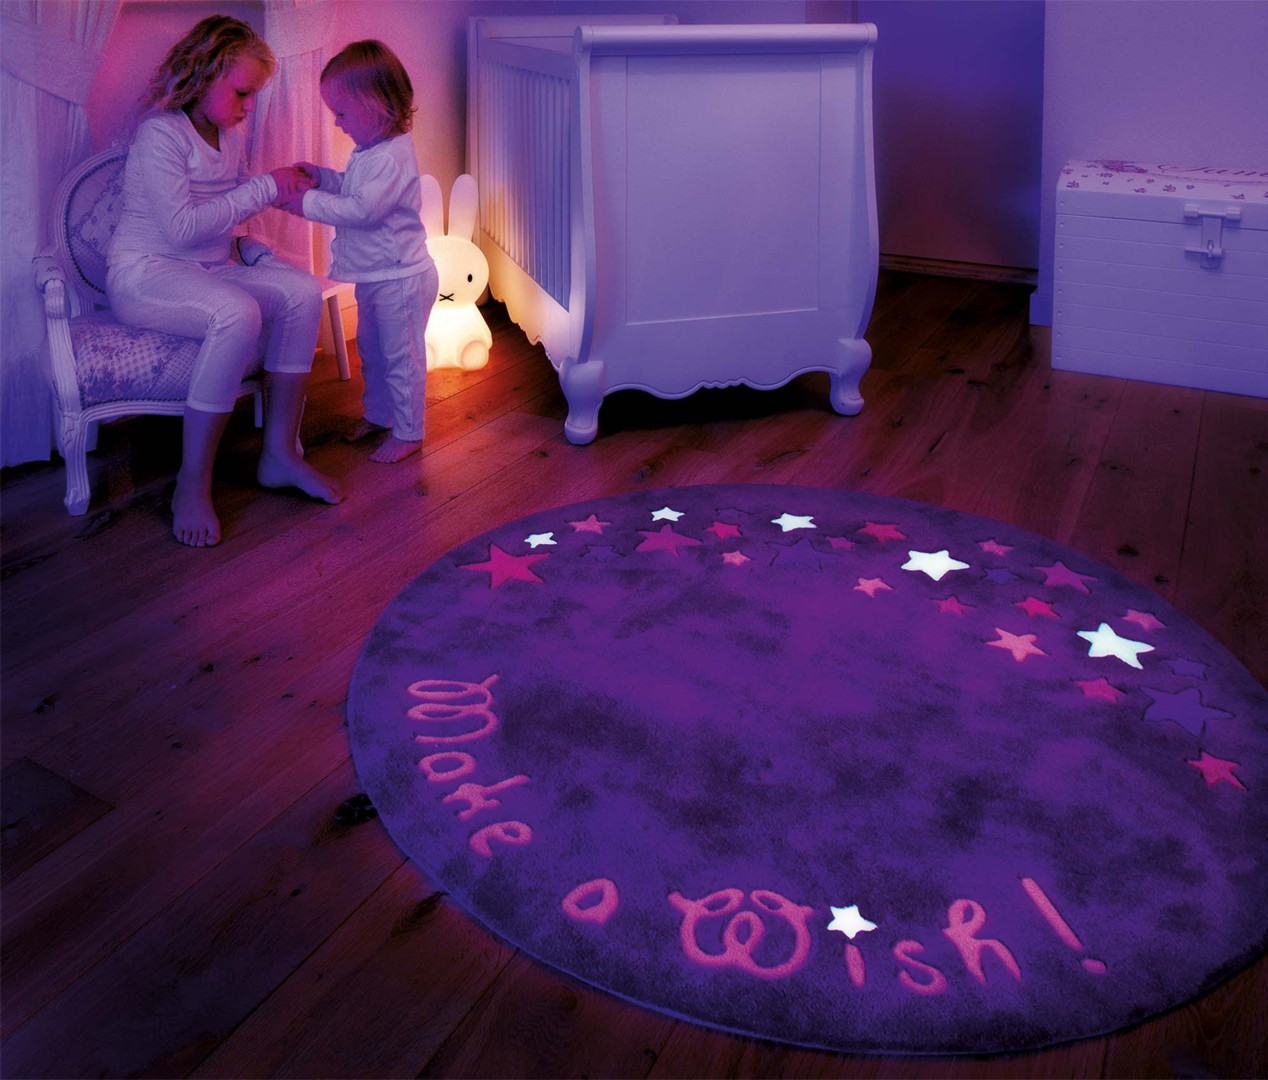 Tapis fluorescent rond violet Glowy Arte Espina